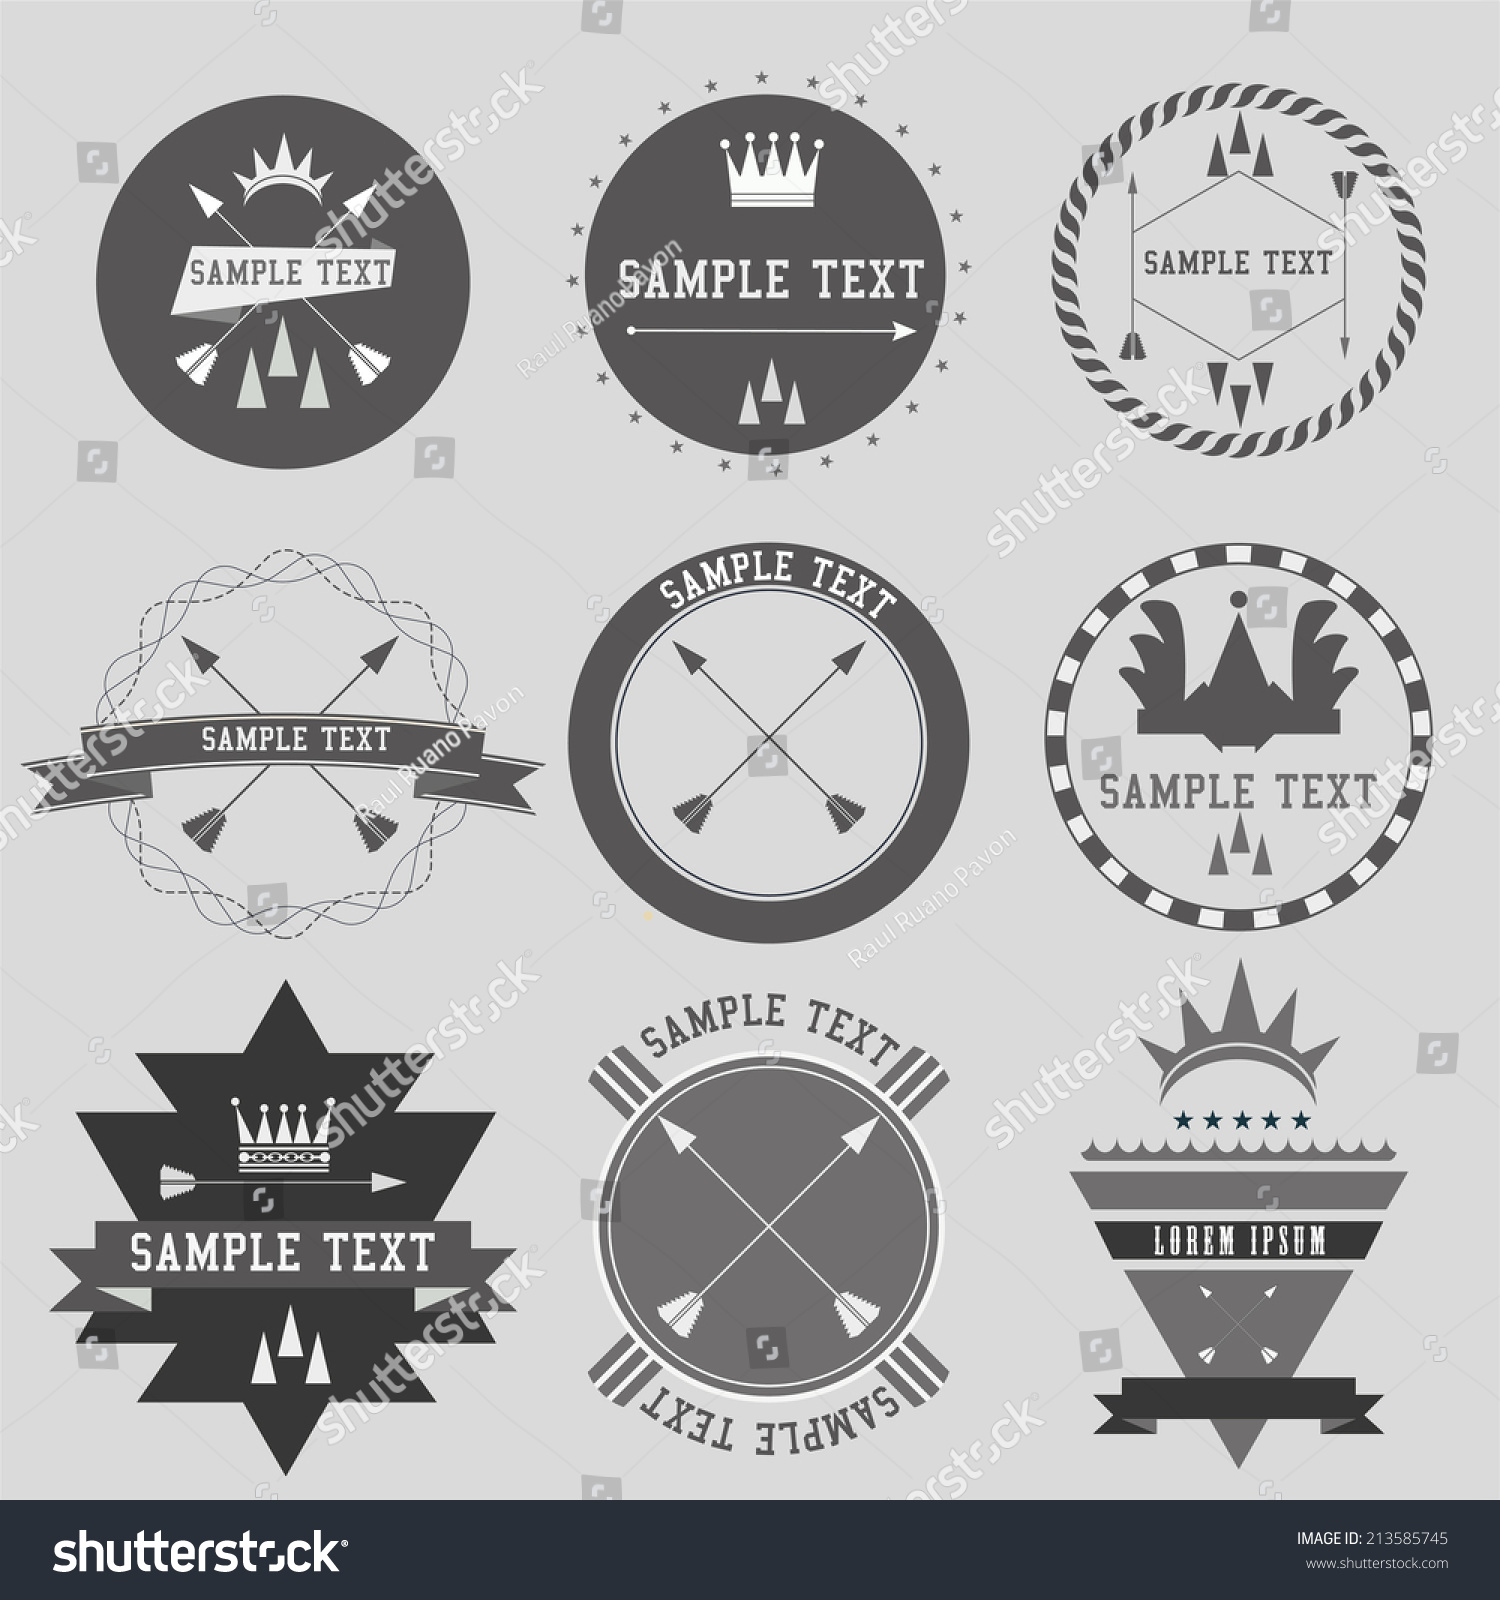 Royalty-free Vector vintage badge and label templates #213585745 ...